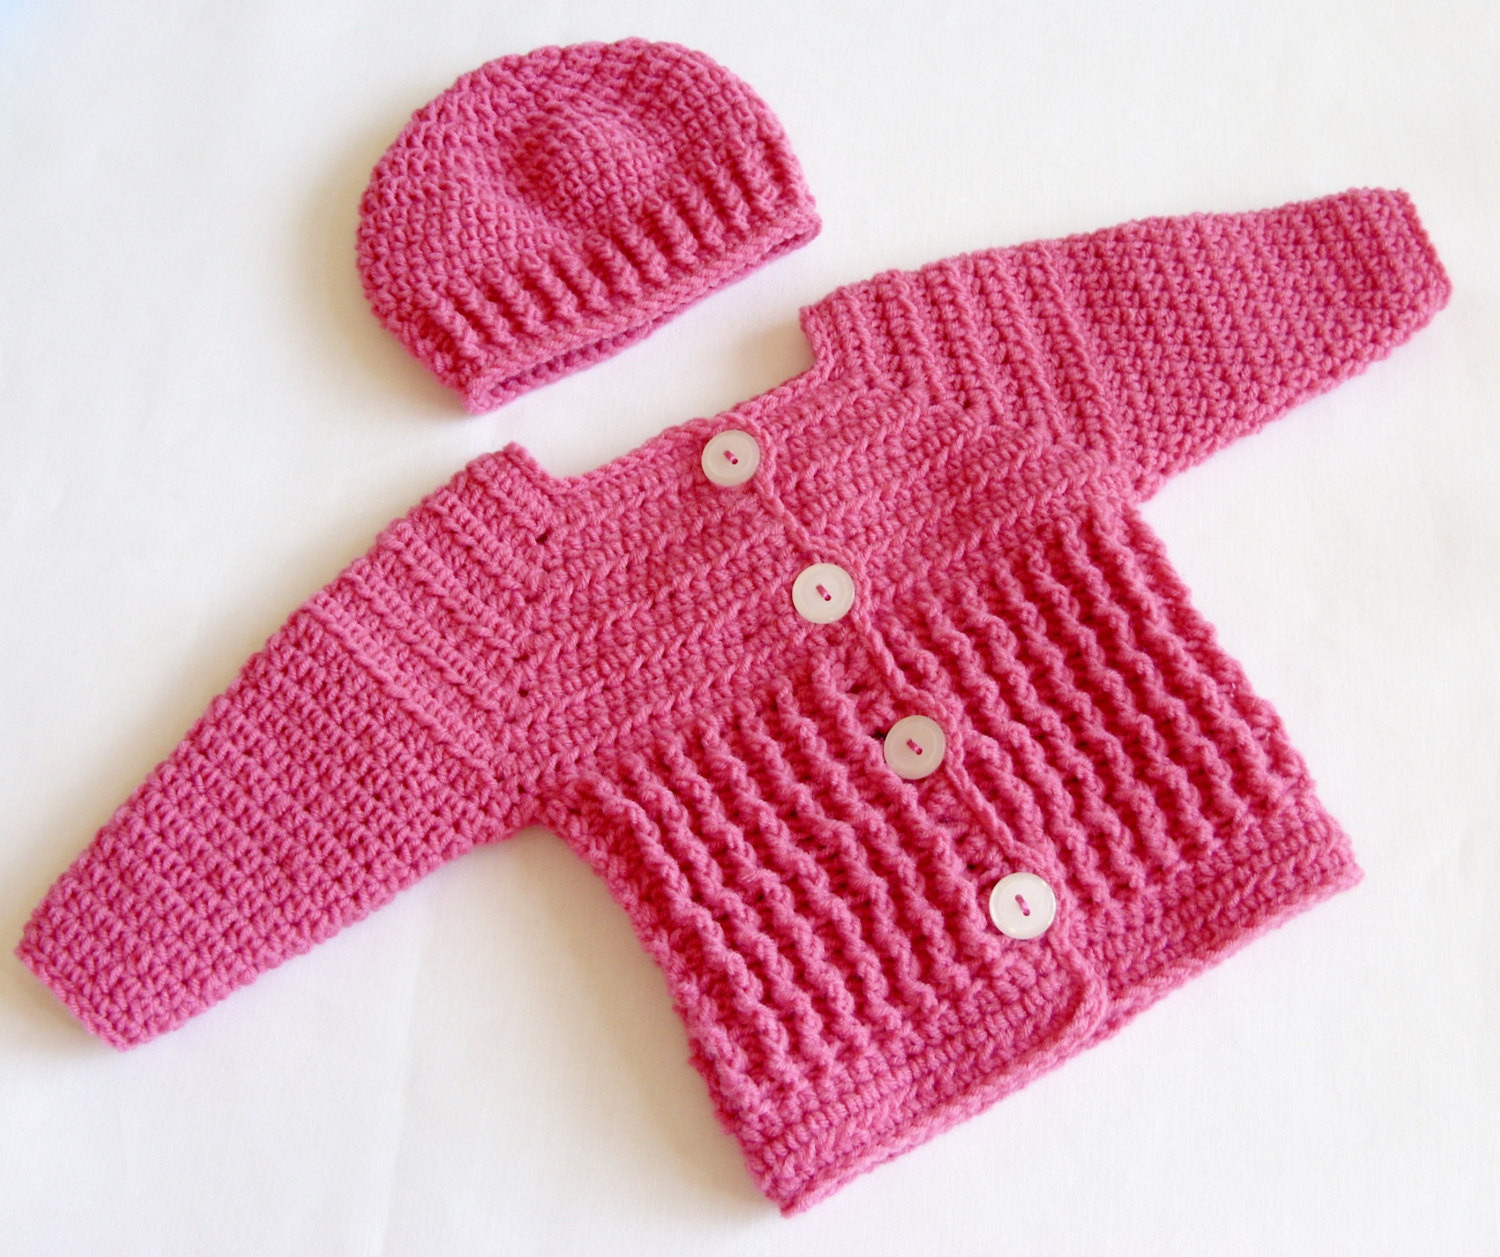 Crochet toddler Sweaters Unique Baby Girl Sweater Set Crochet Pattern Crochet Baby Sweater Of Attractive 46 Pictures Crochet toddler Sweaters